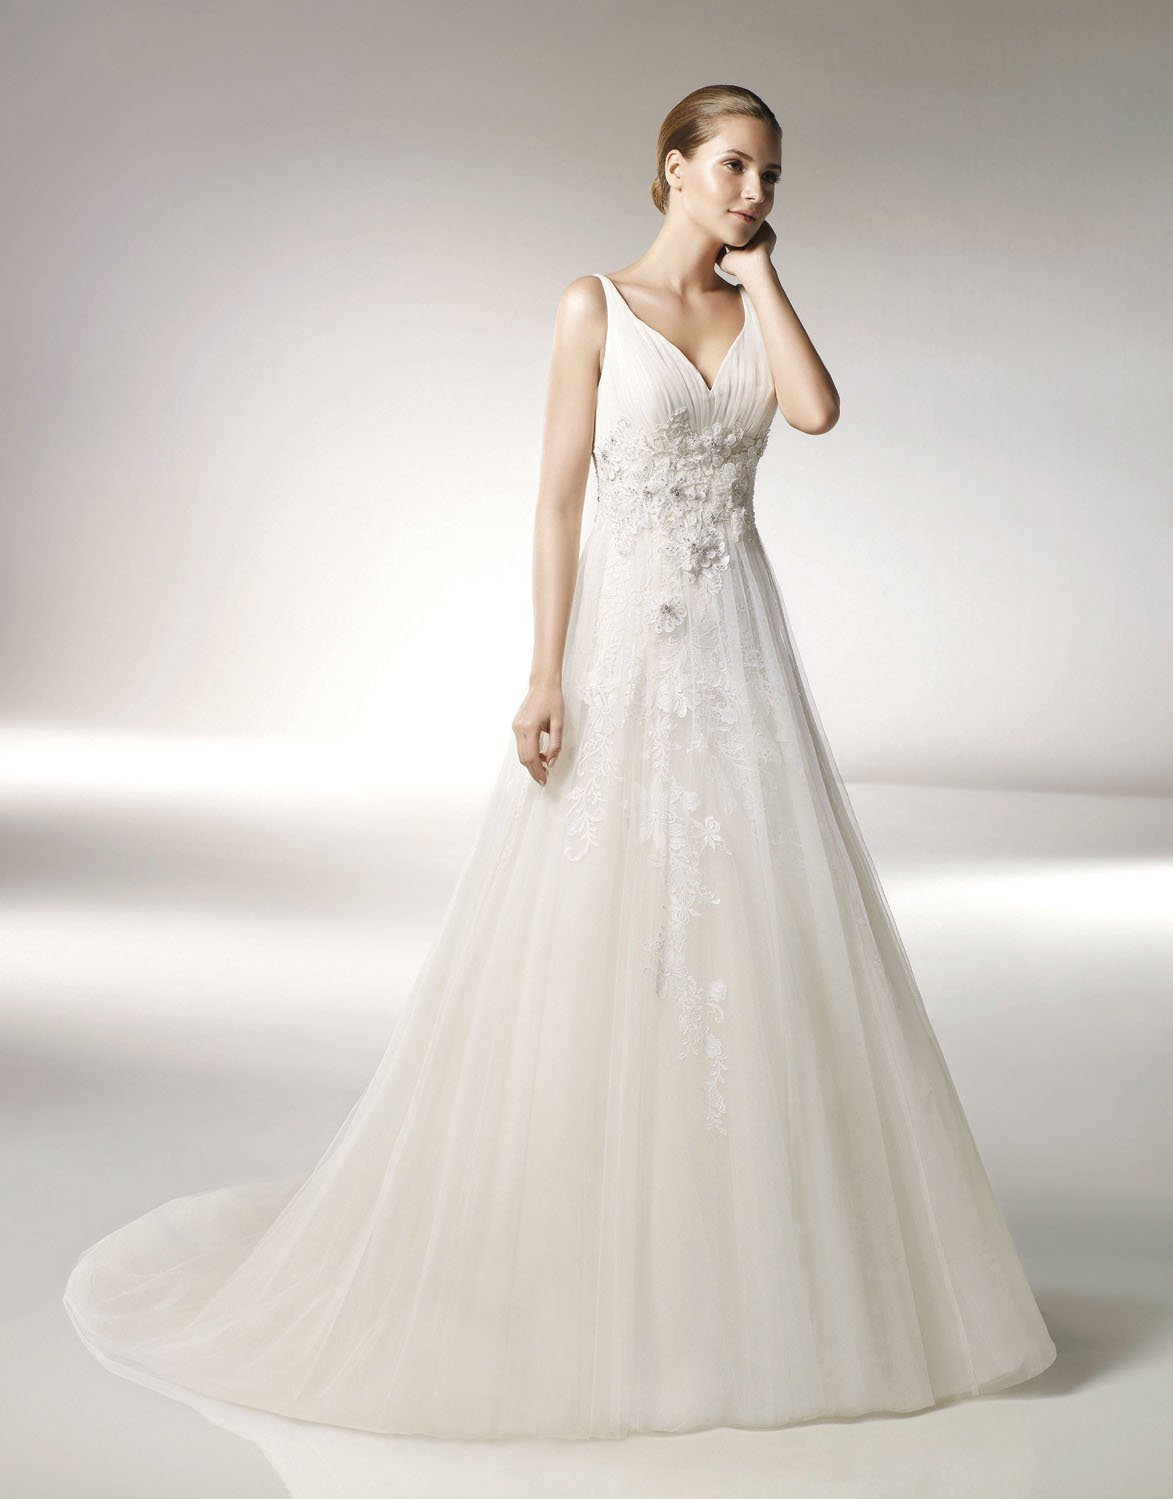 Cap Sleeve V-neckline Appliqued Beading Tuller Wedding Dress Bridal Gown aq0039